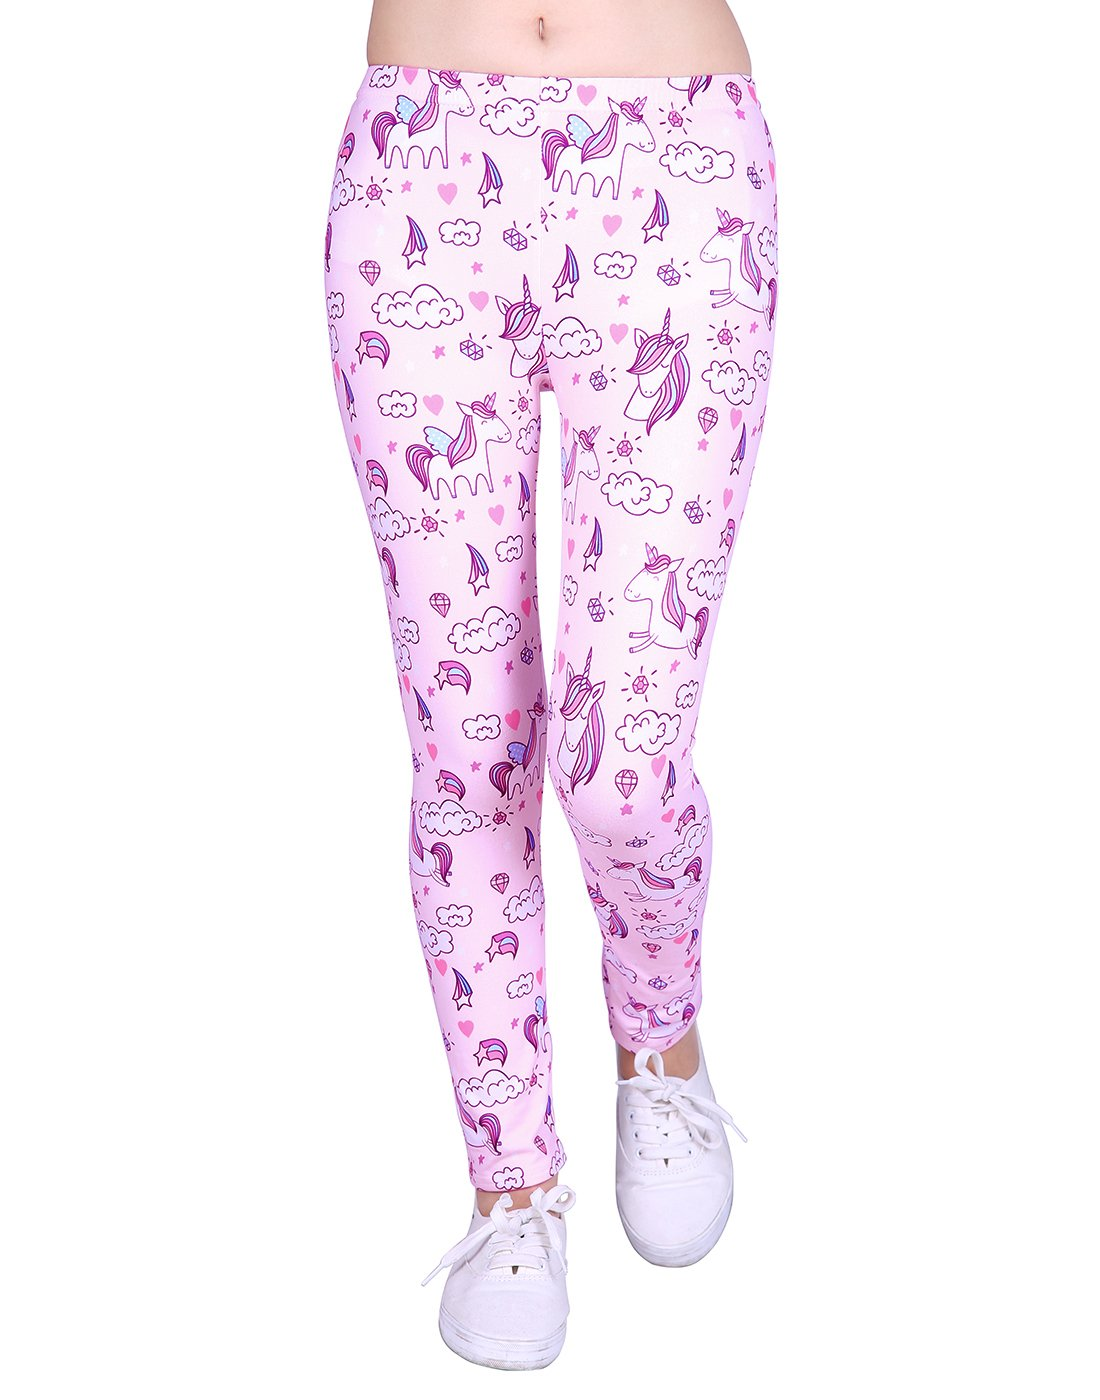 HDE Girl's Ultra Soft Leggings with Print Designs Full Ankle Length Comfy Pants